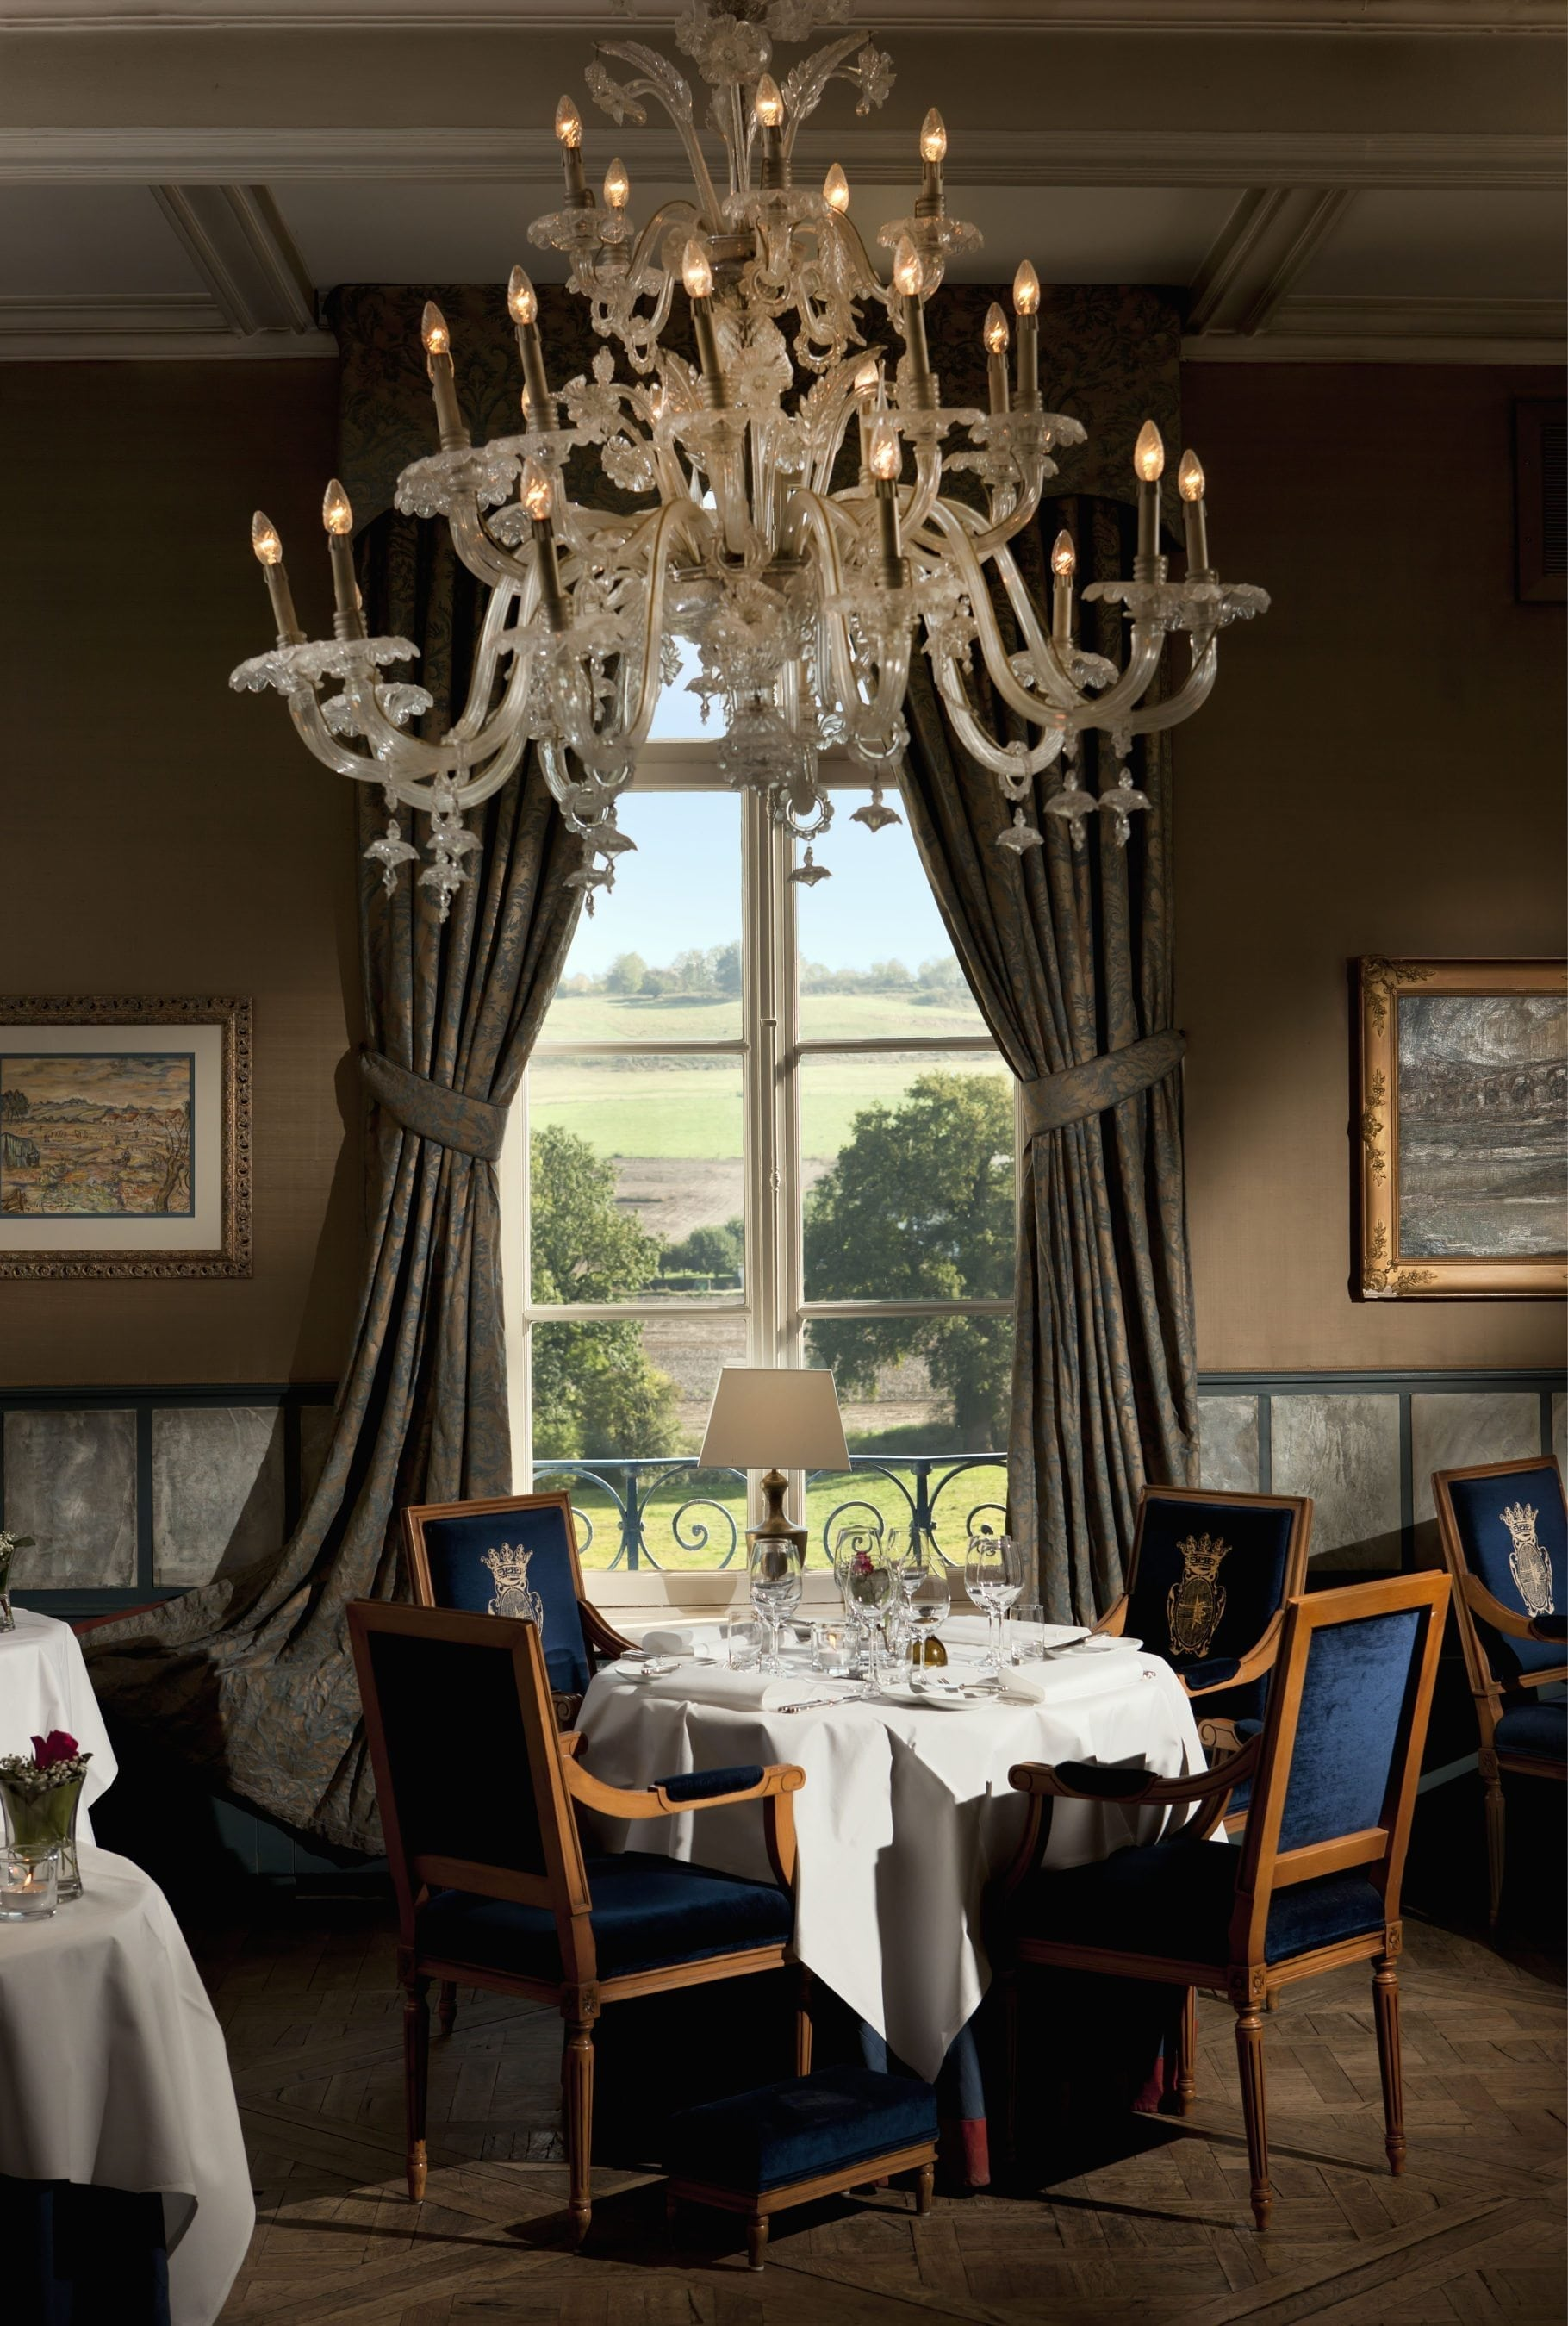 Michelinster Restaurant Château Neercanne | Château Neercanne